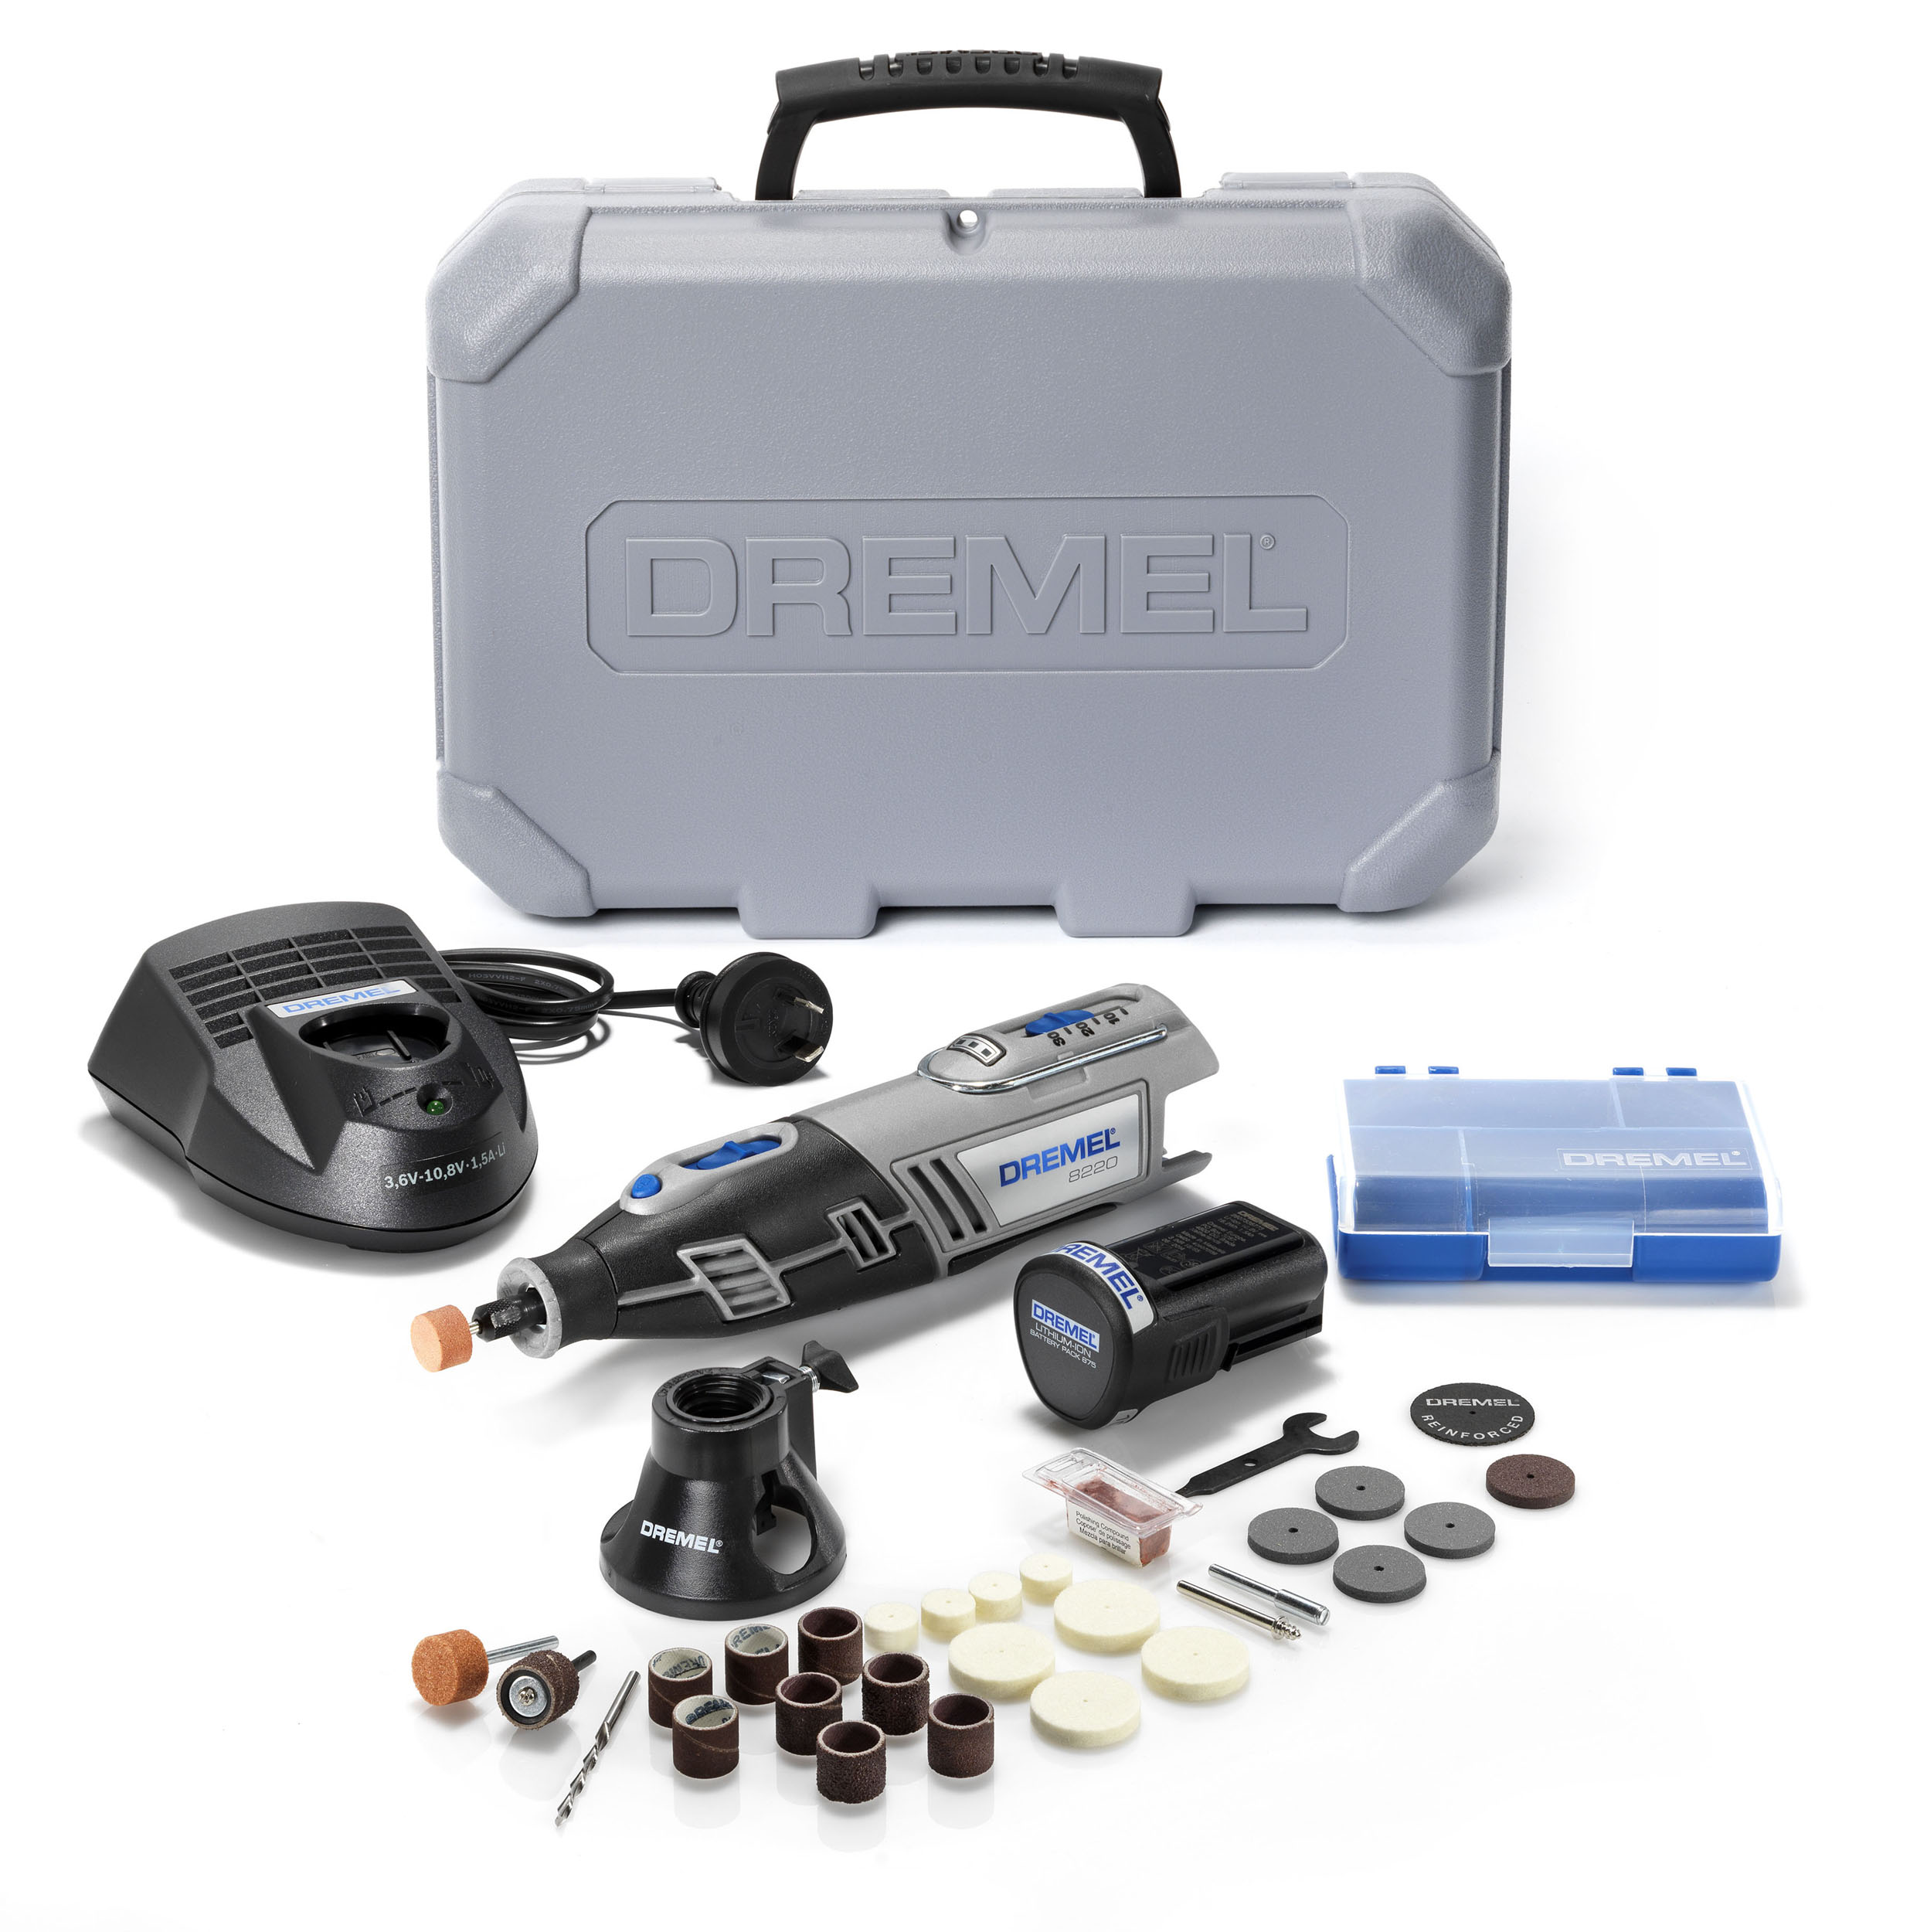 new dremel1.jpg